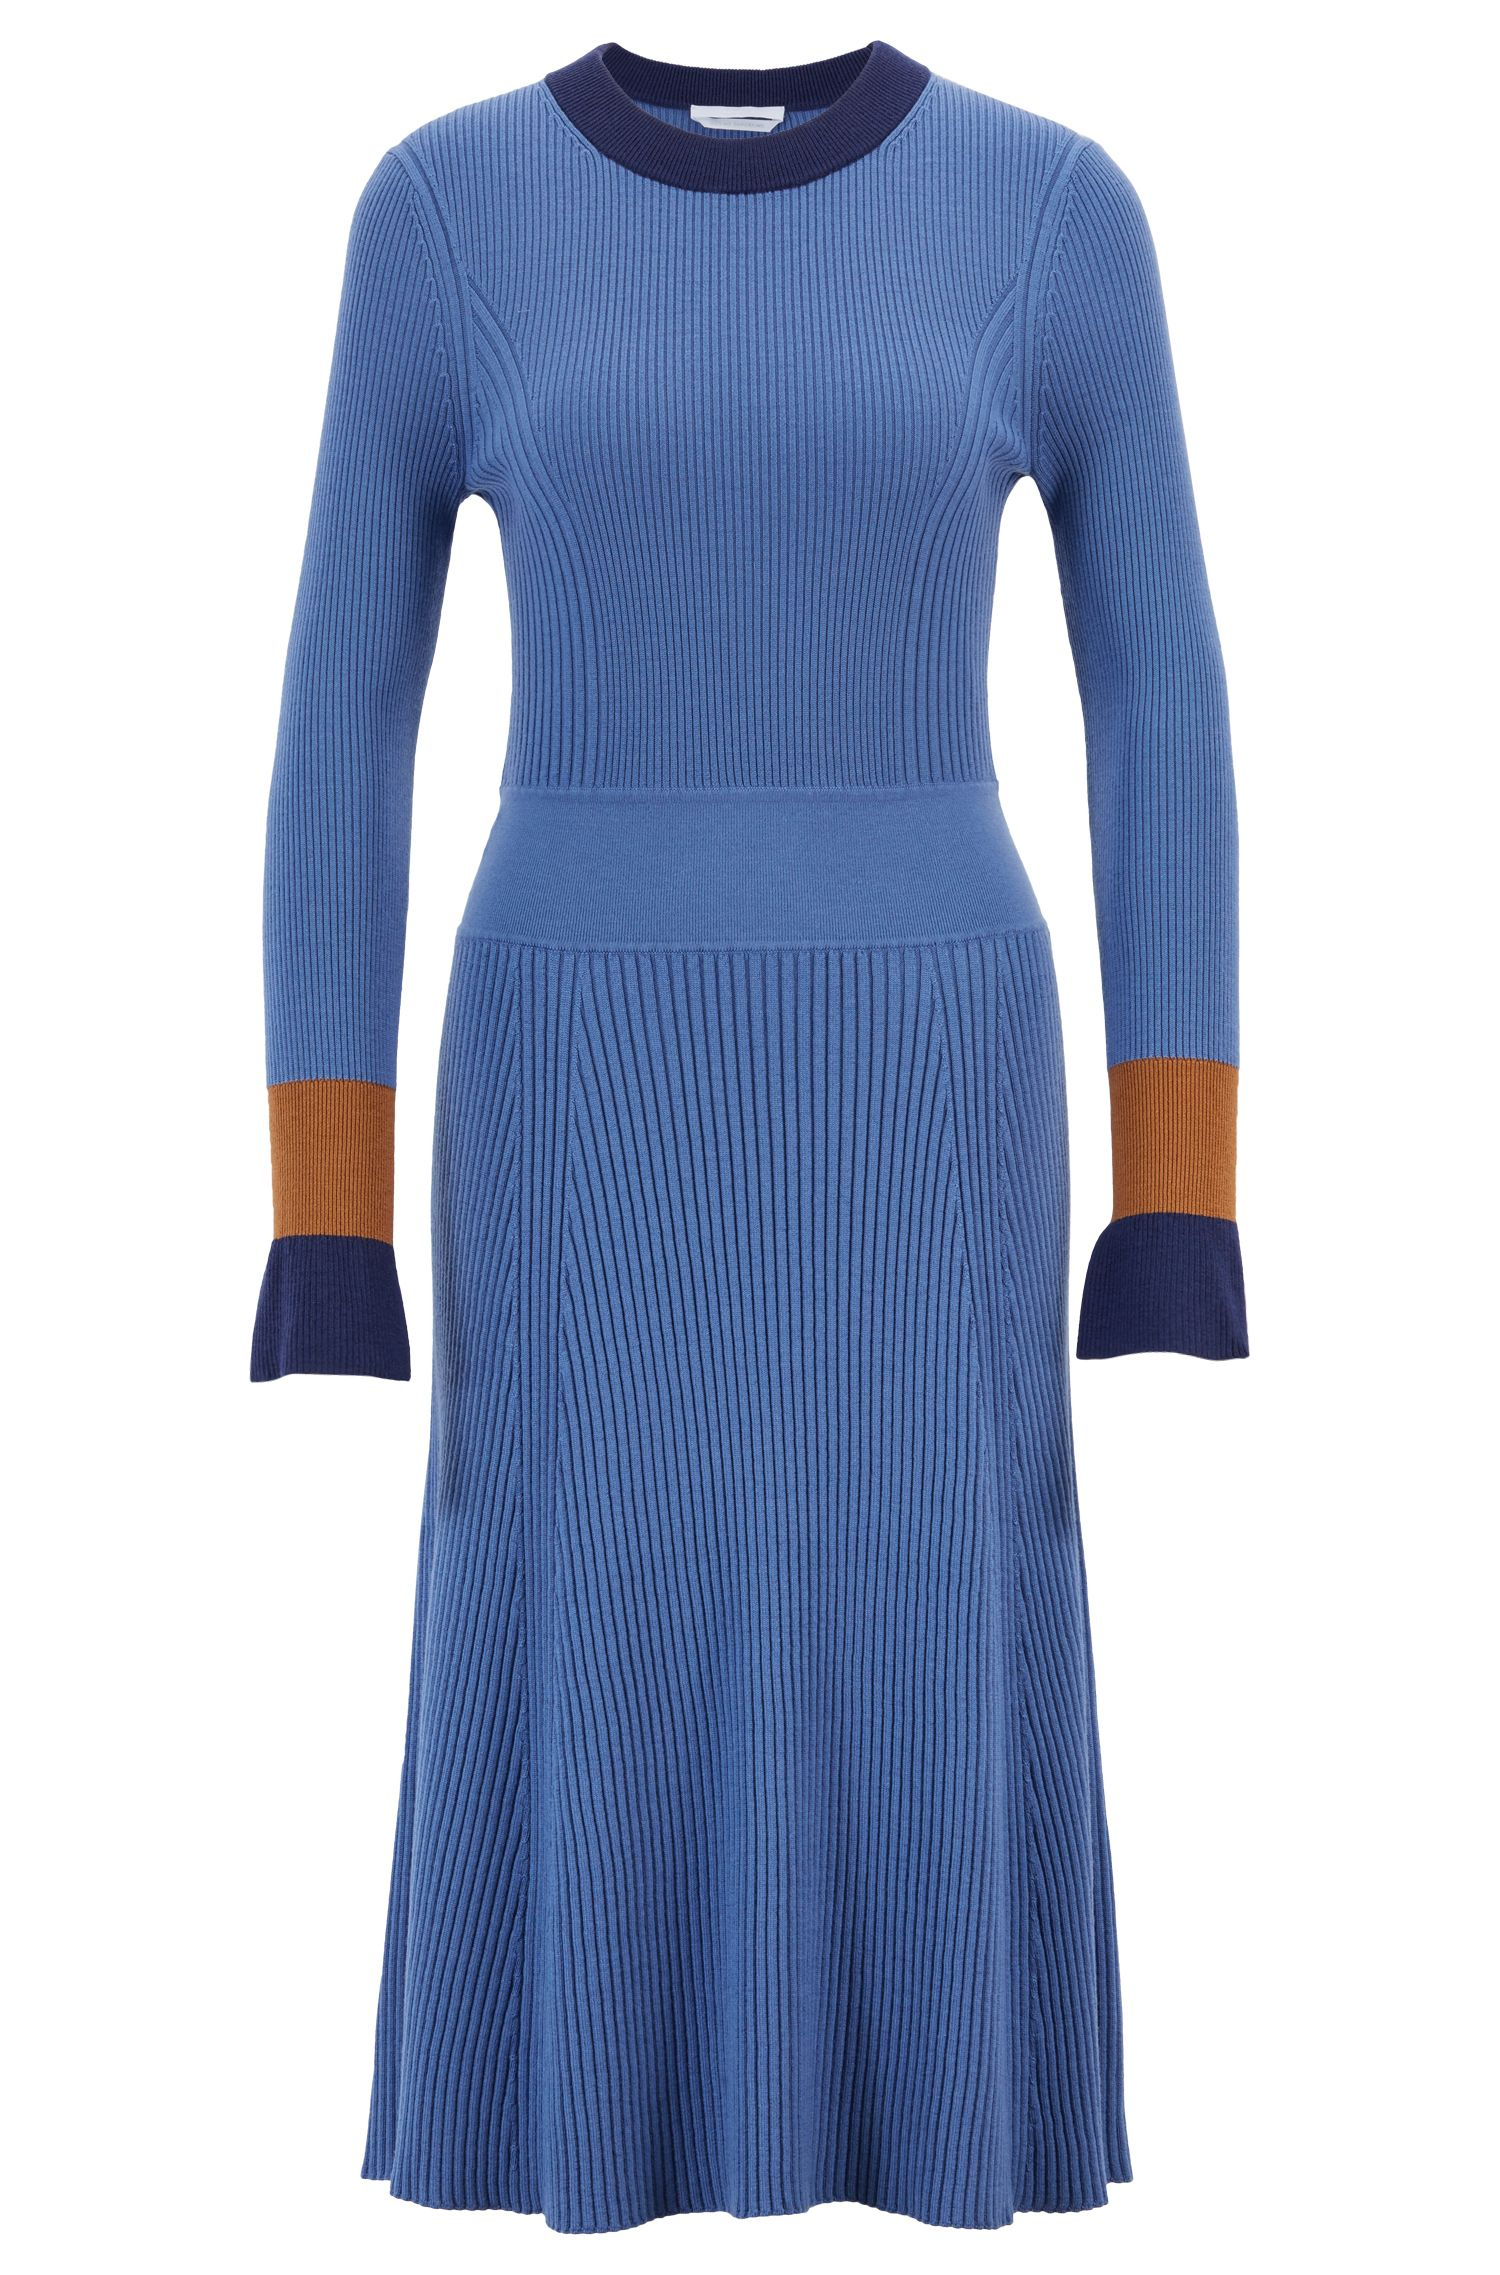 Knitted long-sleeved dress with colorblocking, Patterned